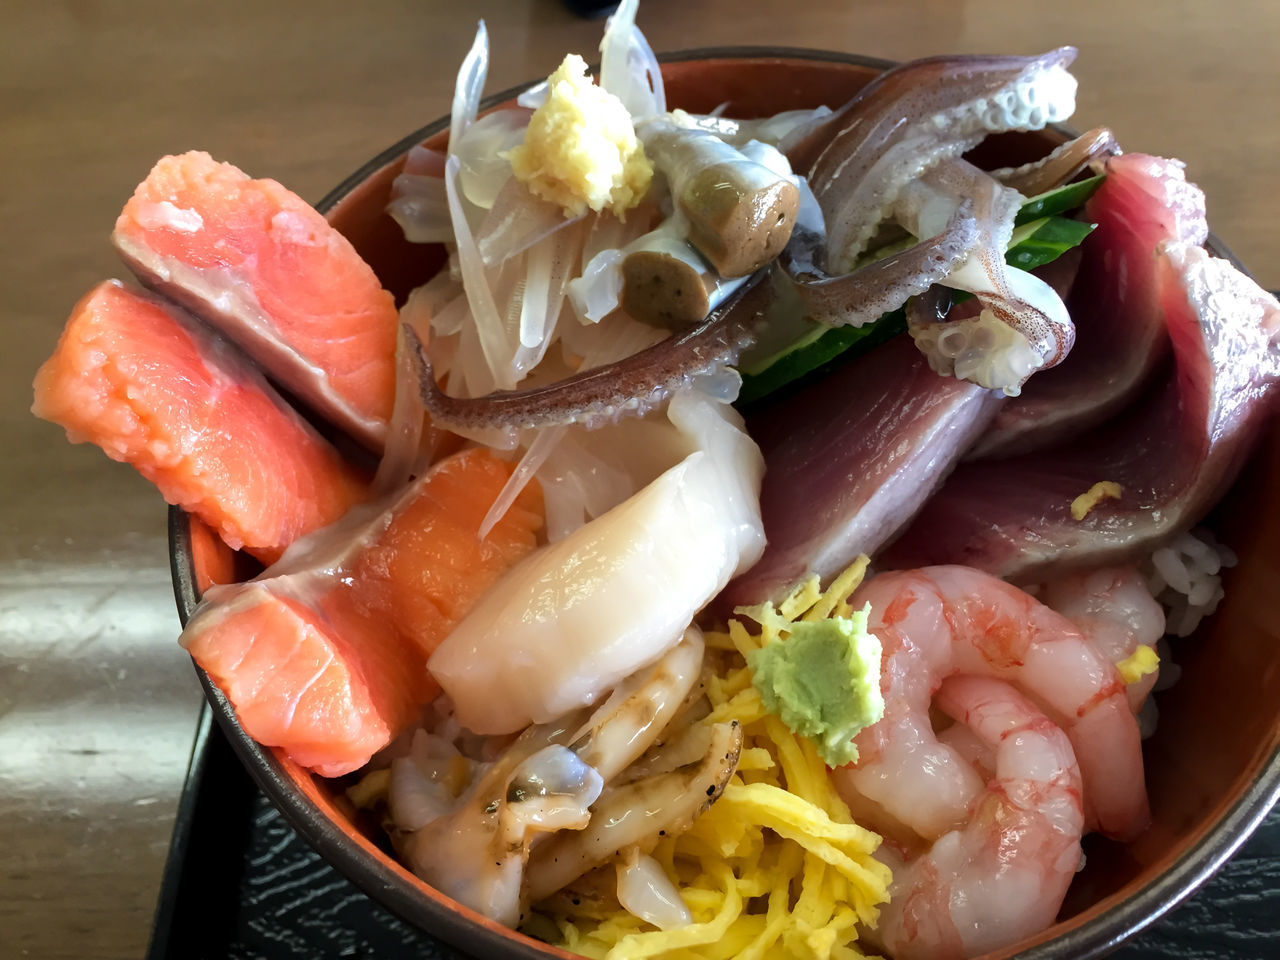 A bowl of fresh sashimi - squid, salmon, tuna and shrimp. Close-up Day Fish Food Food And Drink Freshness Healthy Eating High Angle View Indoors  No People Plate Ready-to-eat Salmon Sashimi  Sashimi  Seafood Serving Size Shrimp Squid Tuna